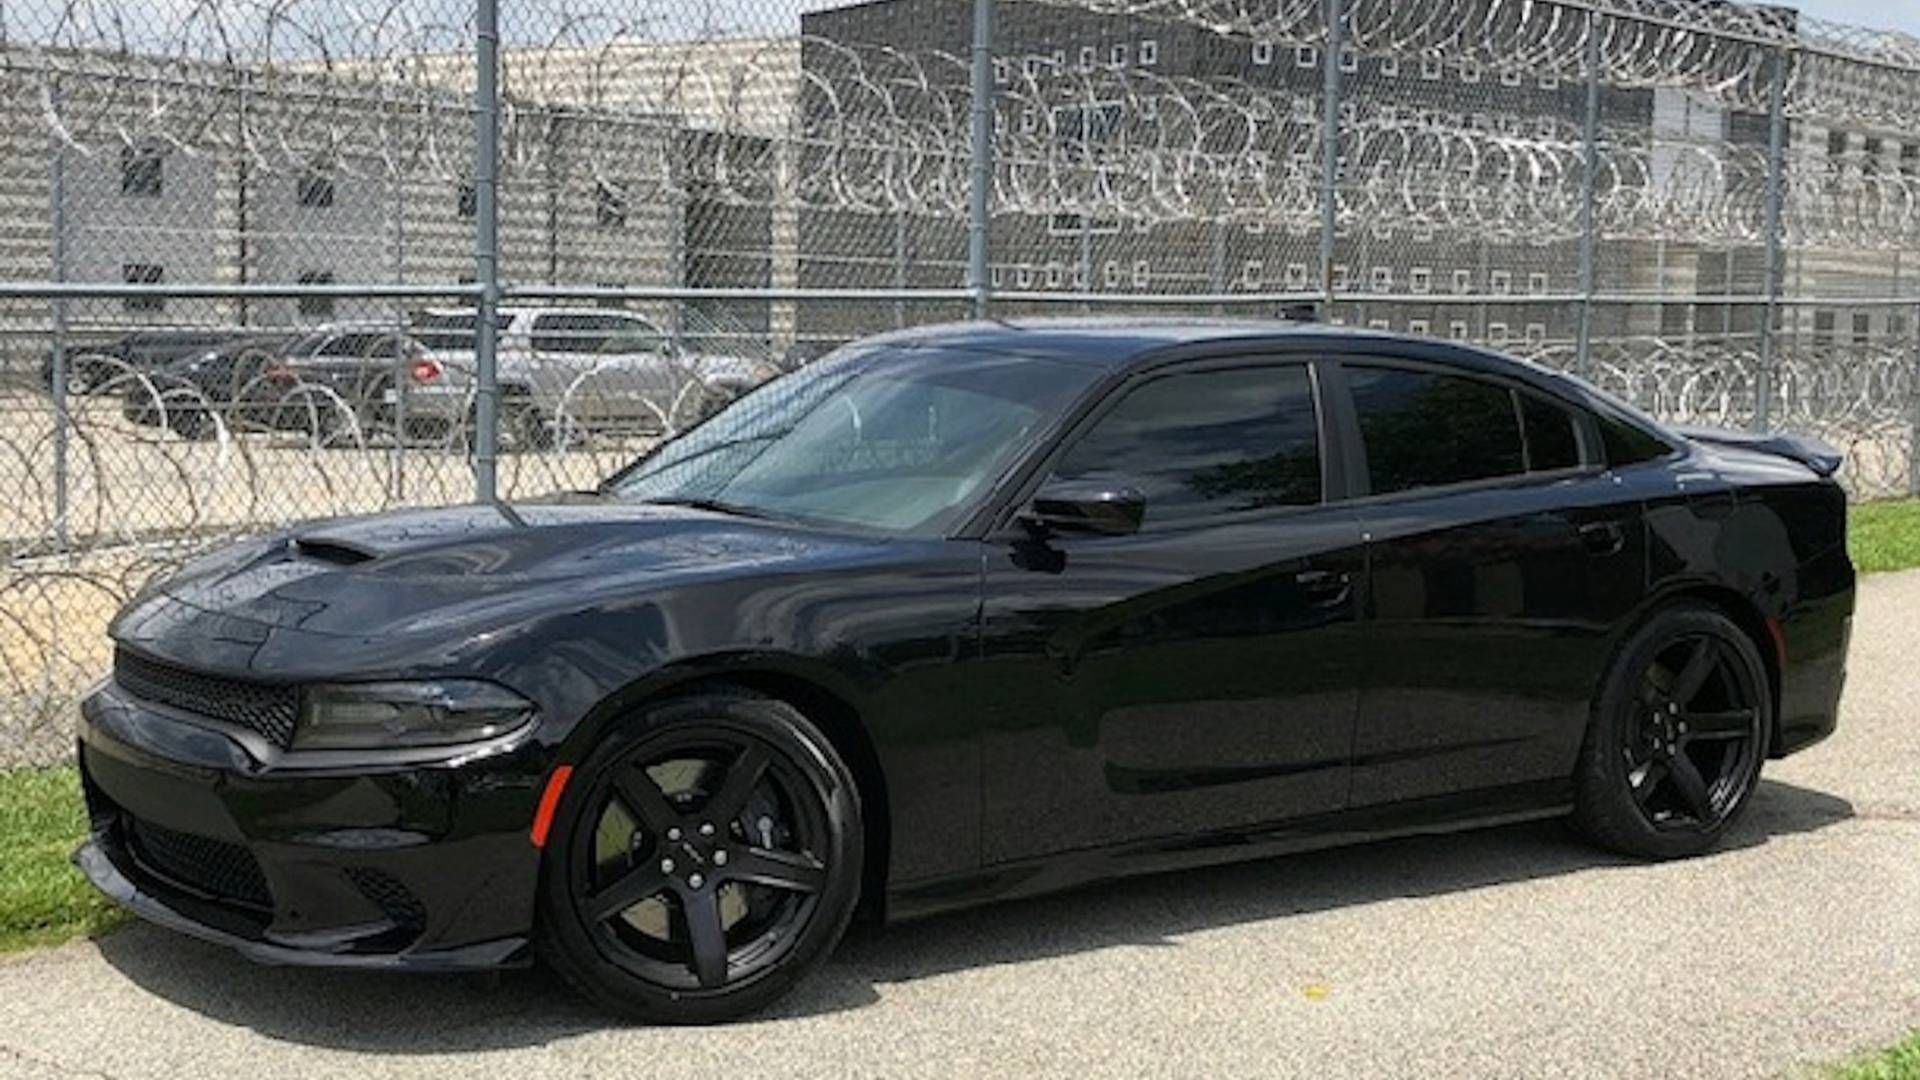 Used Dodge Charger Hellcat For Sale >> Georgia Sheriff In Hot Water With Dodge Charger Hellcat Purchase